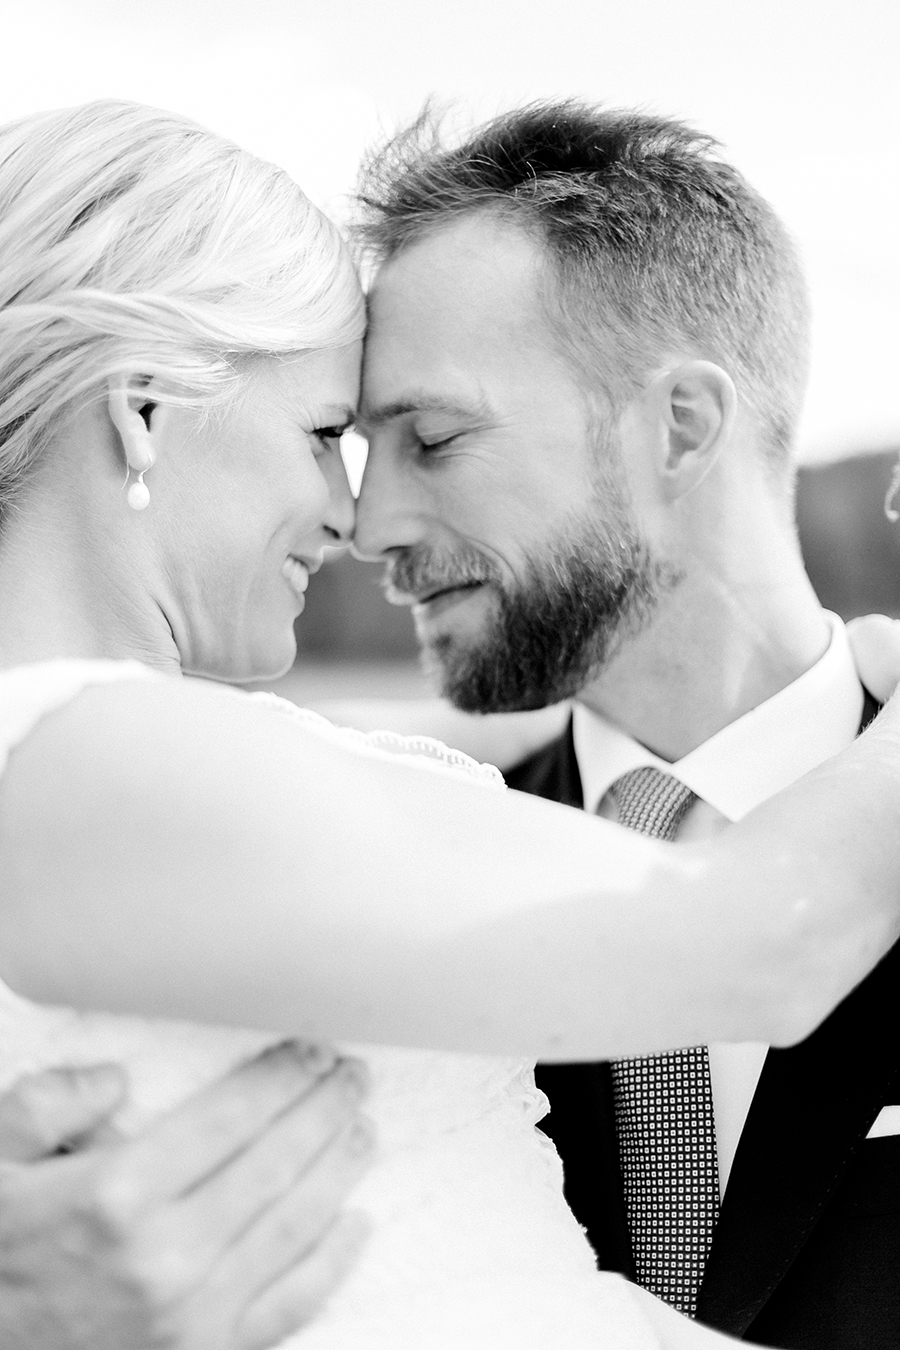 rebeccahansson.com-wedding-Elin-and-Peder-august-13th-2016-(428).jpg